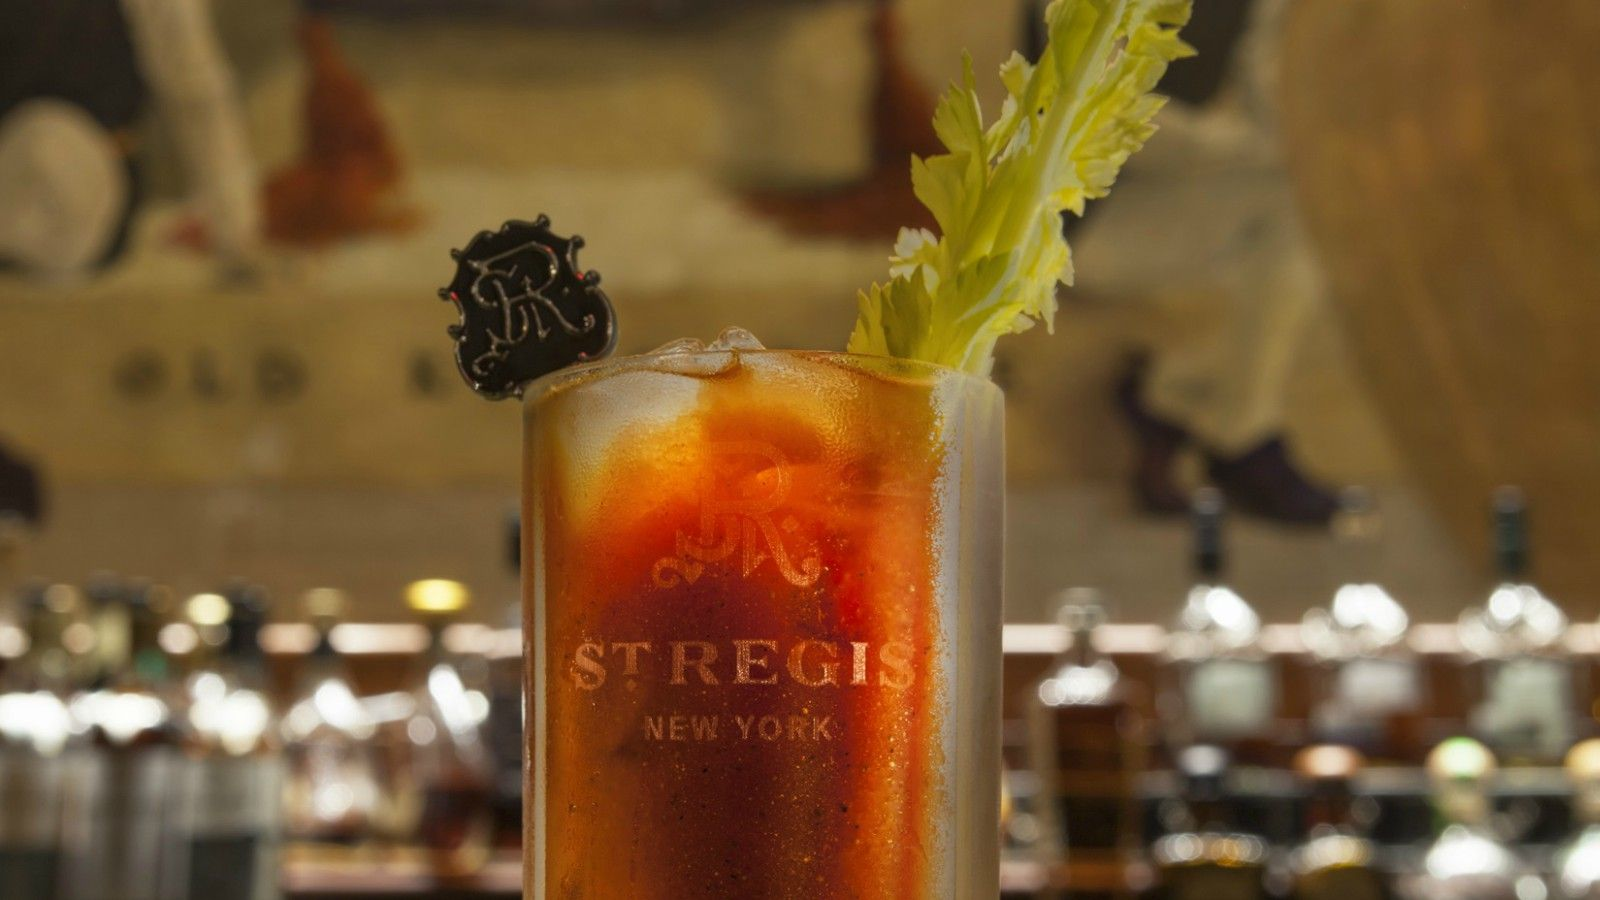 Restaurants in NYC - St. Regis Bloody Mary